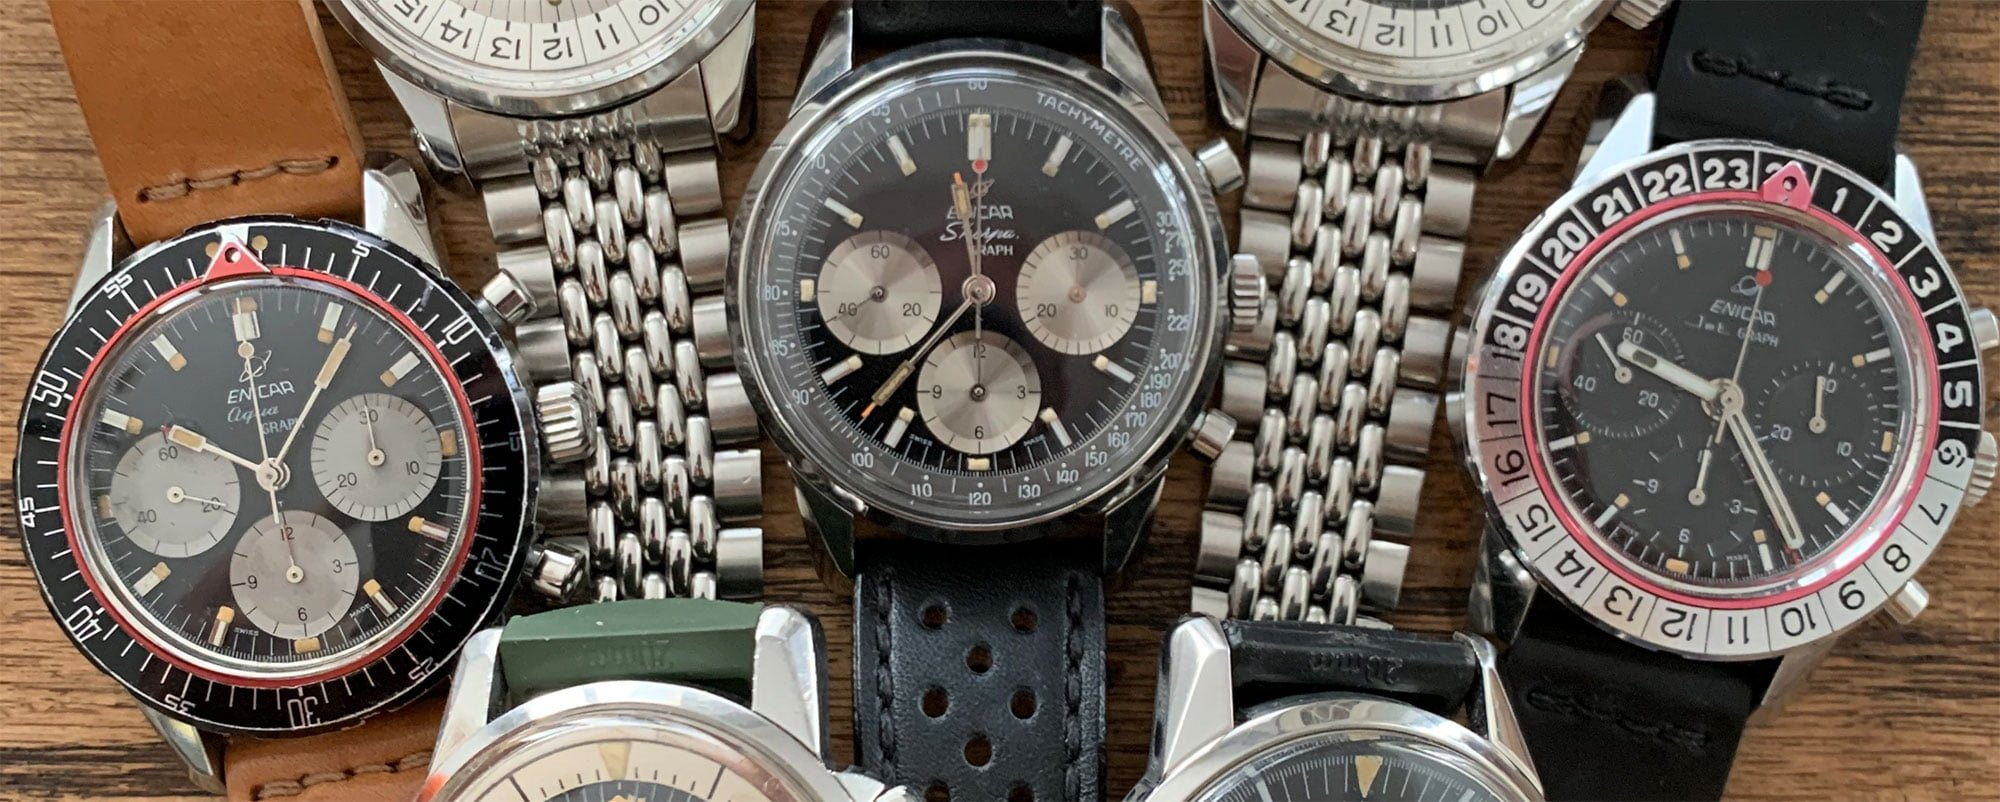 Enicar vintage watches